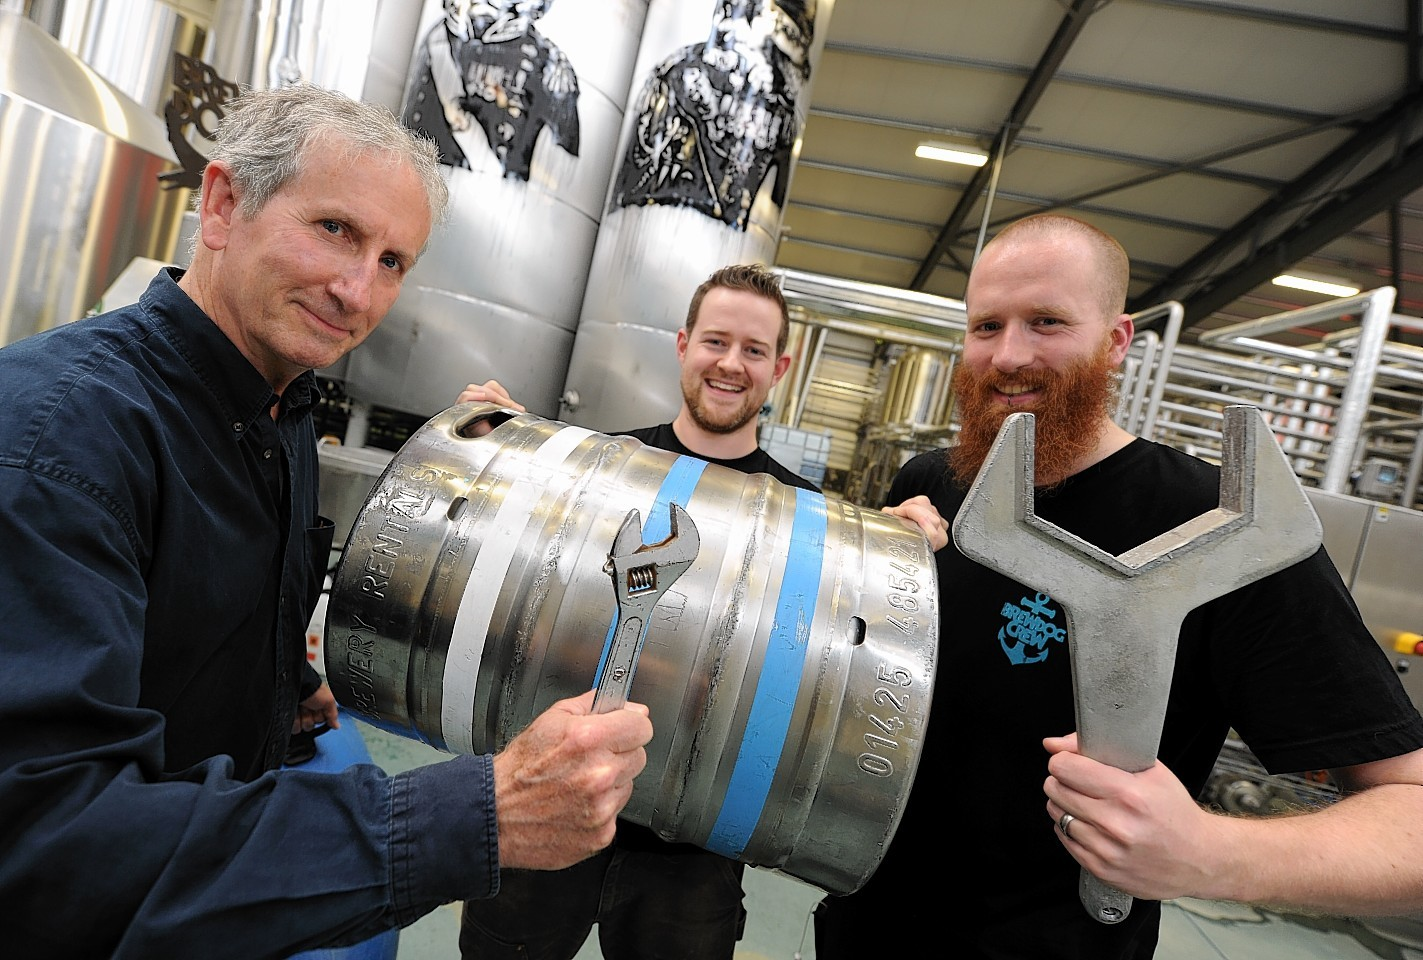 Composer Stephen Montague (pictured left) along with brewery BrewDog are taking aprt in an arts-food project across Aberdeenshire